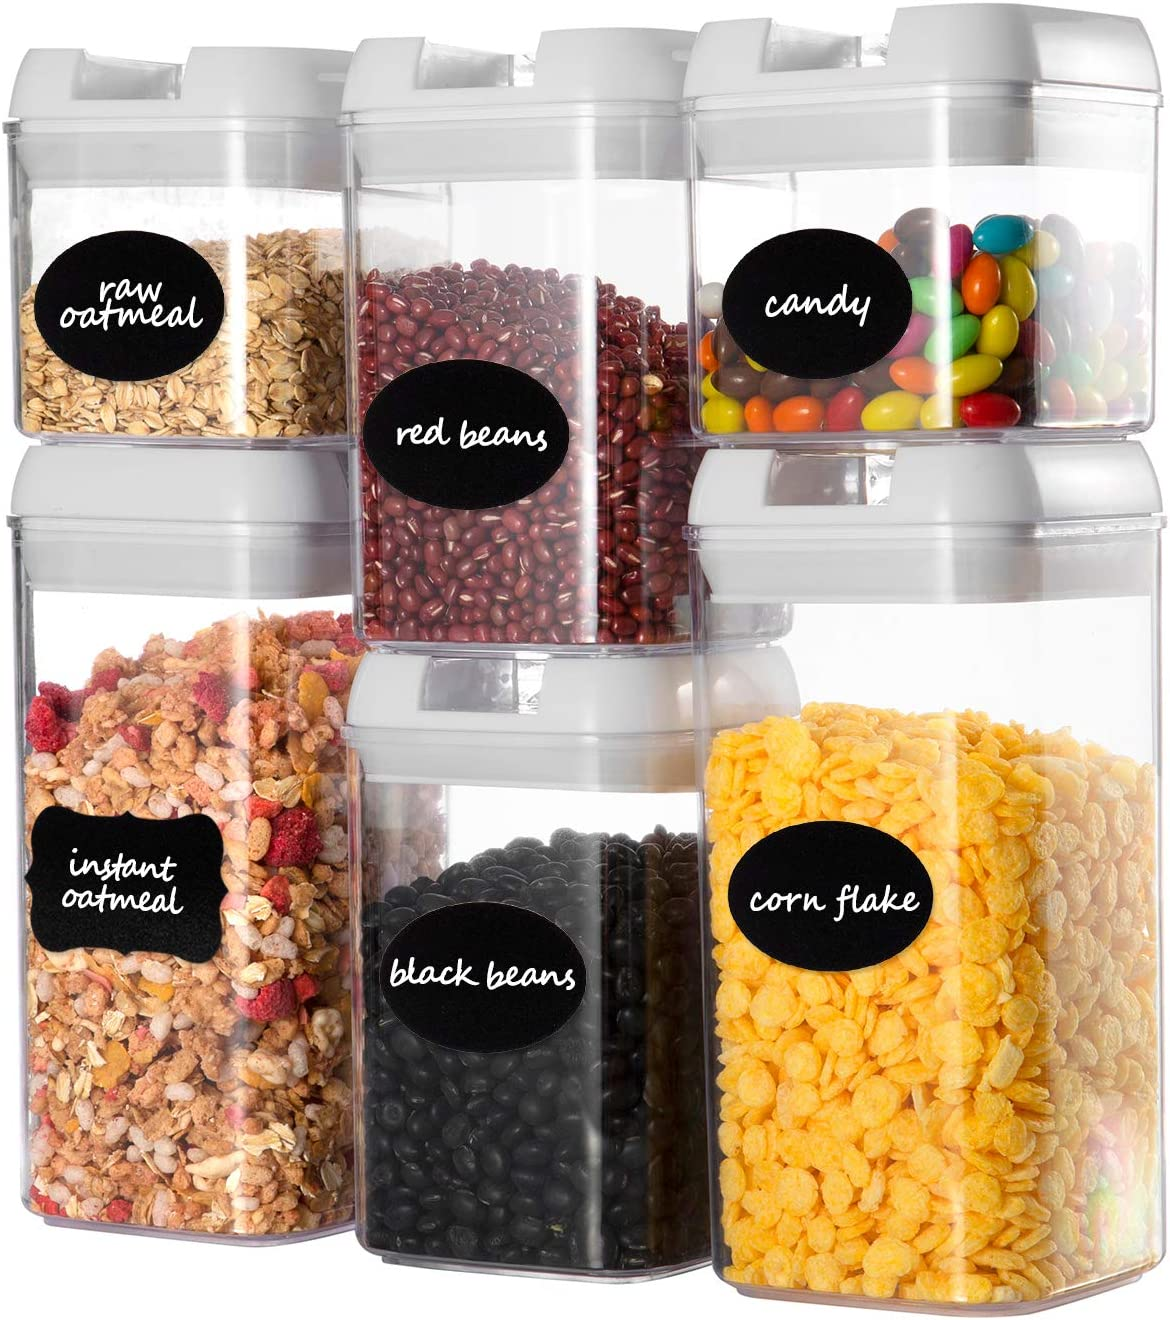 Airtight Food Storage Containers Set, Faite's 6 Pieces BPA Free Kitchen Storage Container with Easy Lock Lids,Plastic Sorage Bins with Durable Lids Ideal for Cereal, Flour & Sugar